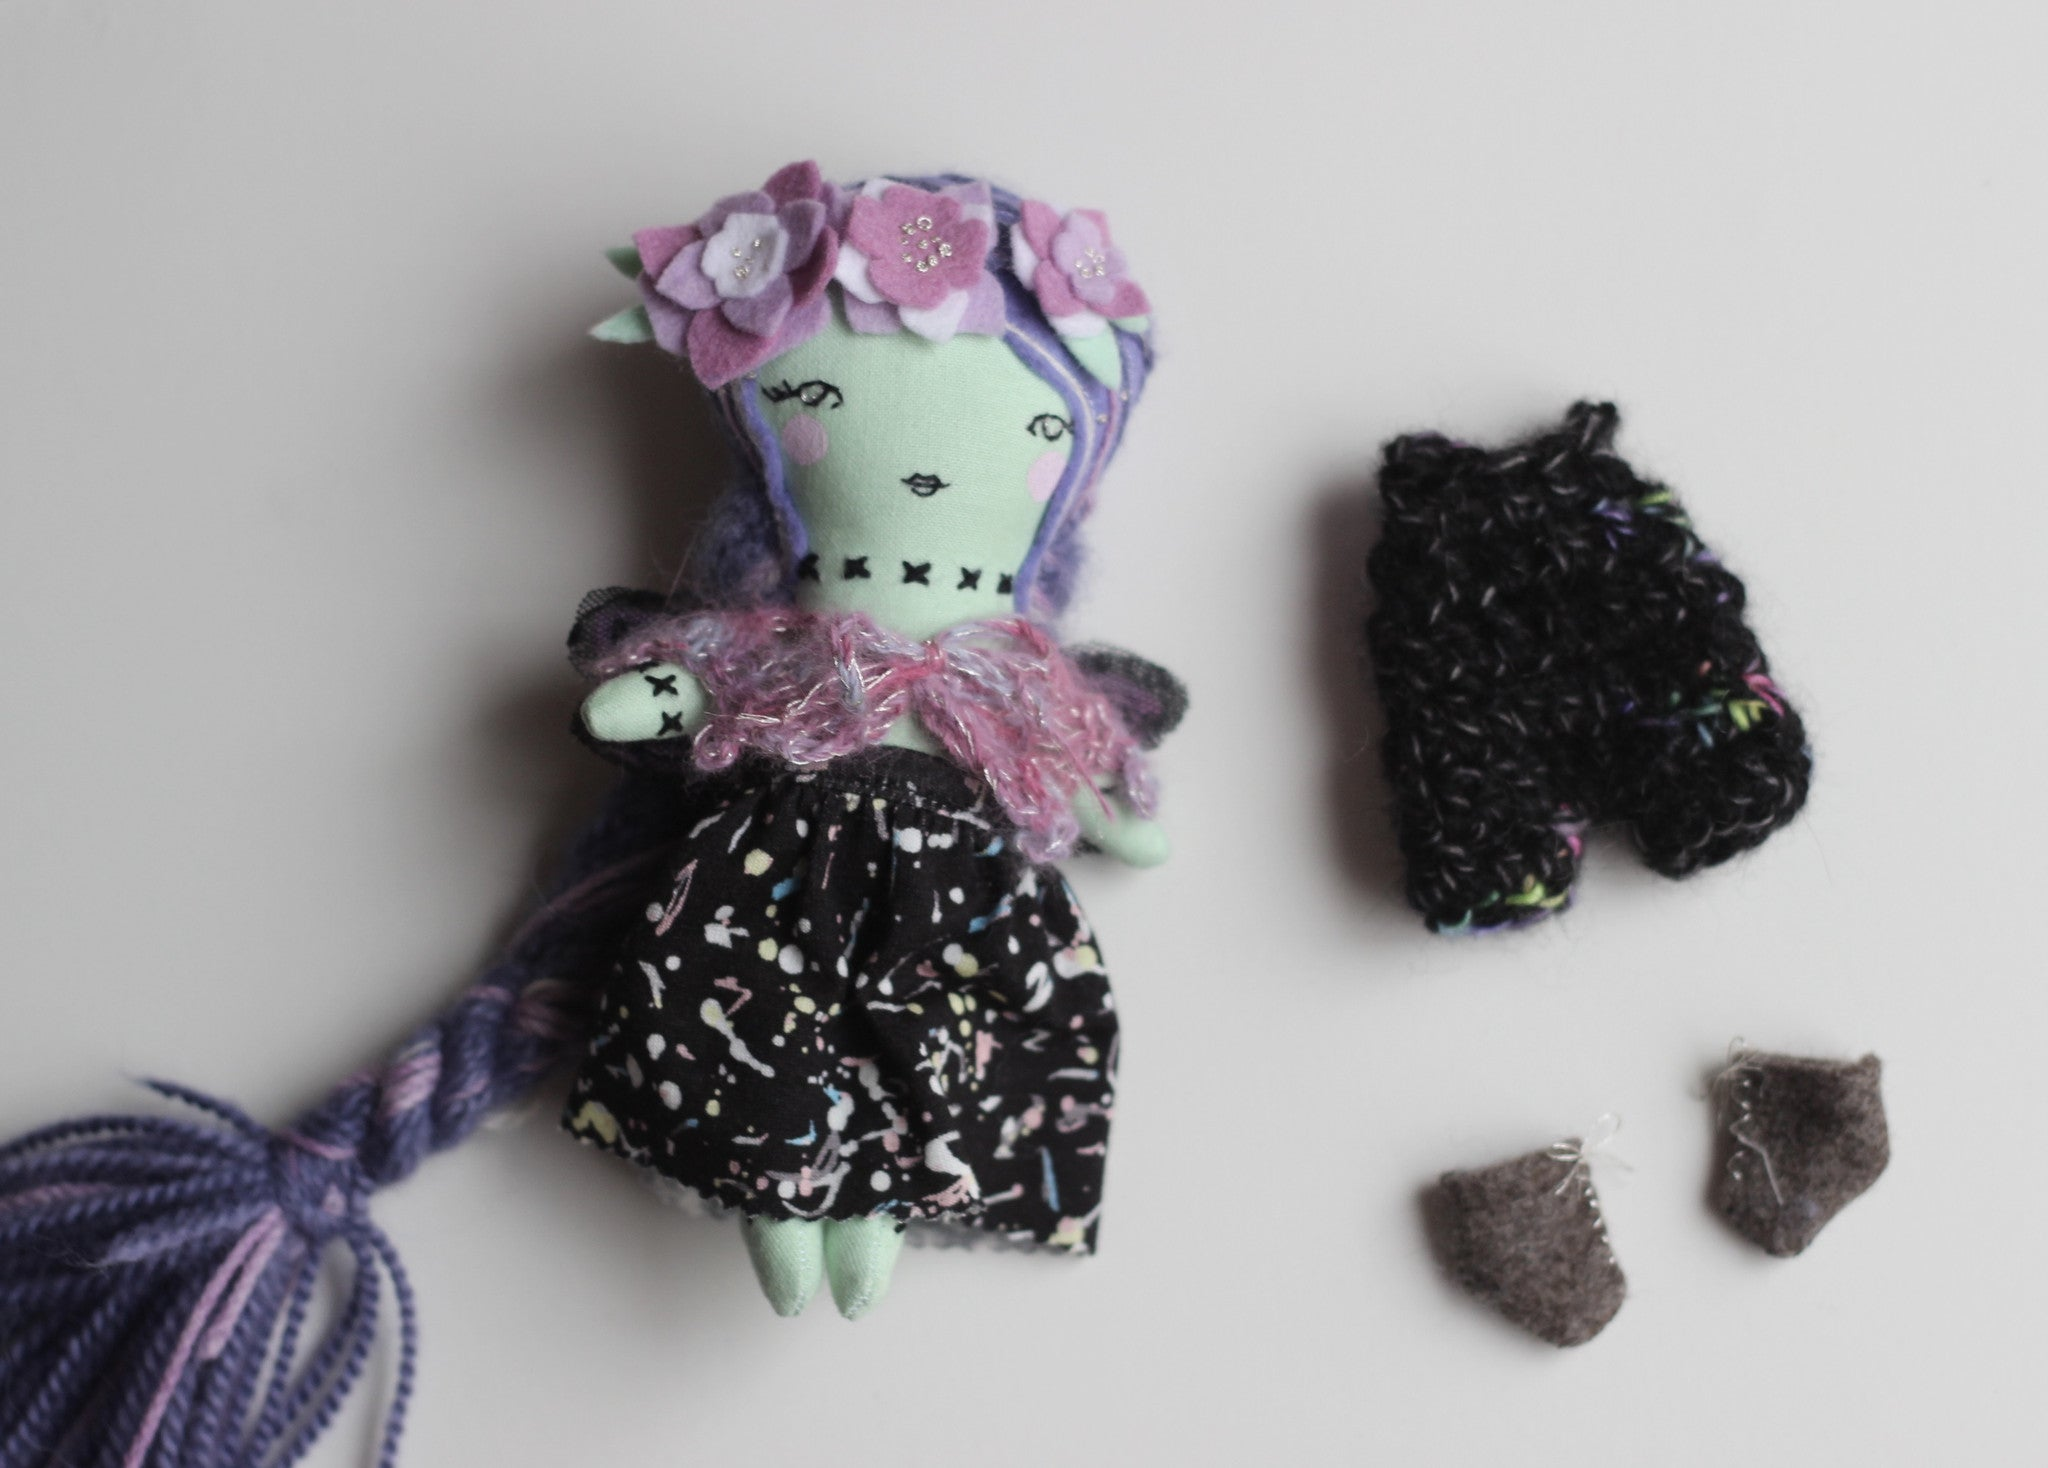 "Mini Fairy Princess Zombie Heirloom Doll Play Set -  6.5"" ish Handmade Cloth Dress-up Doll"